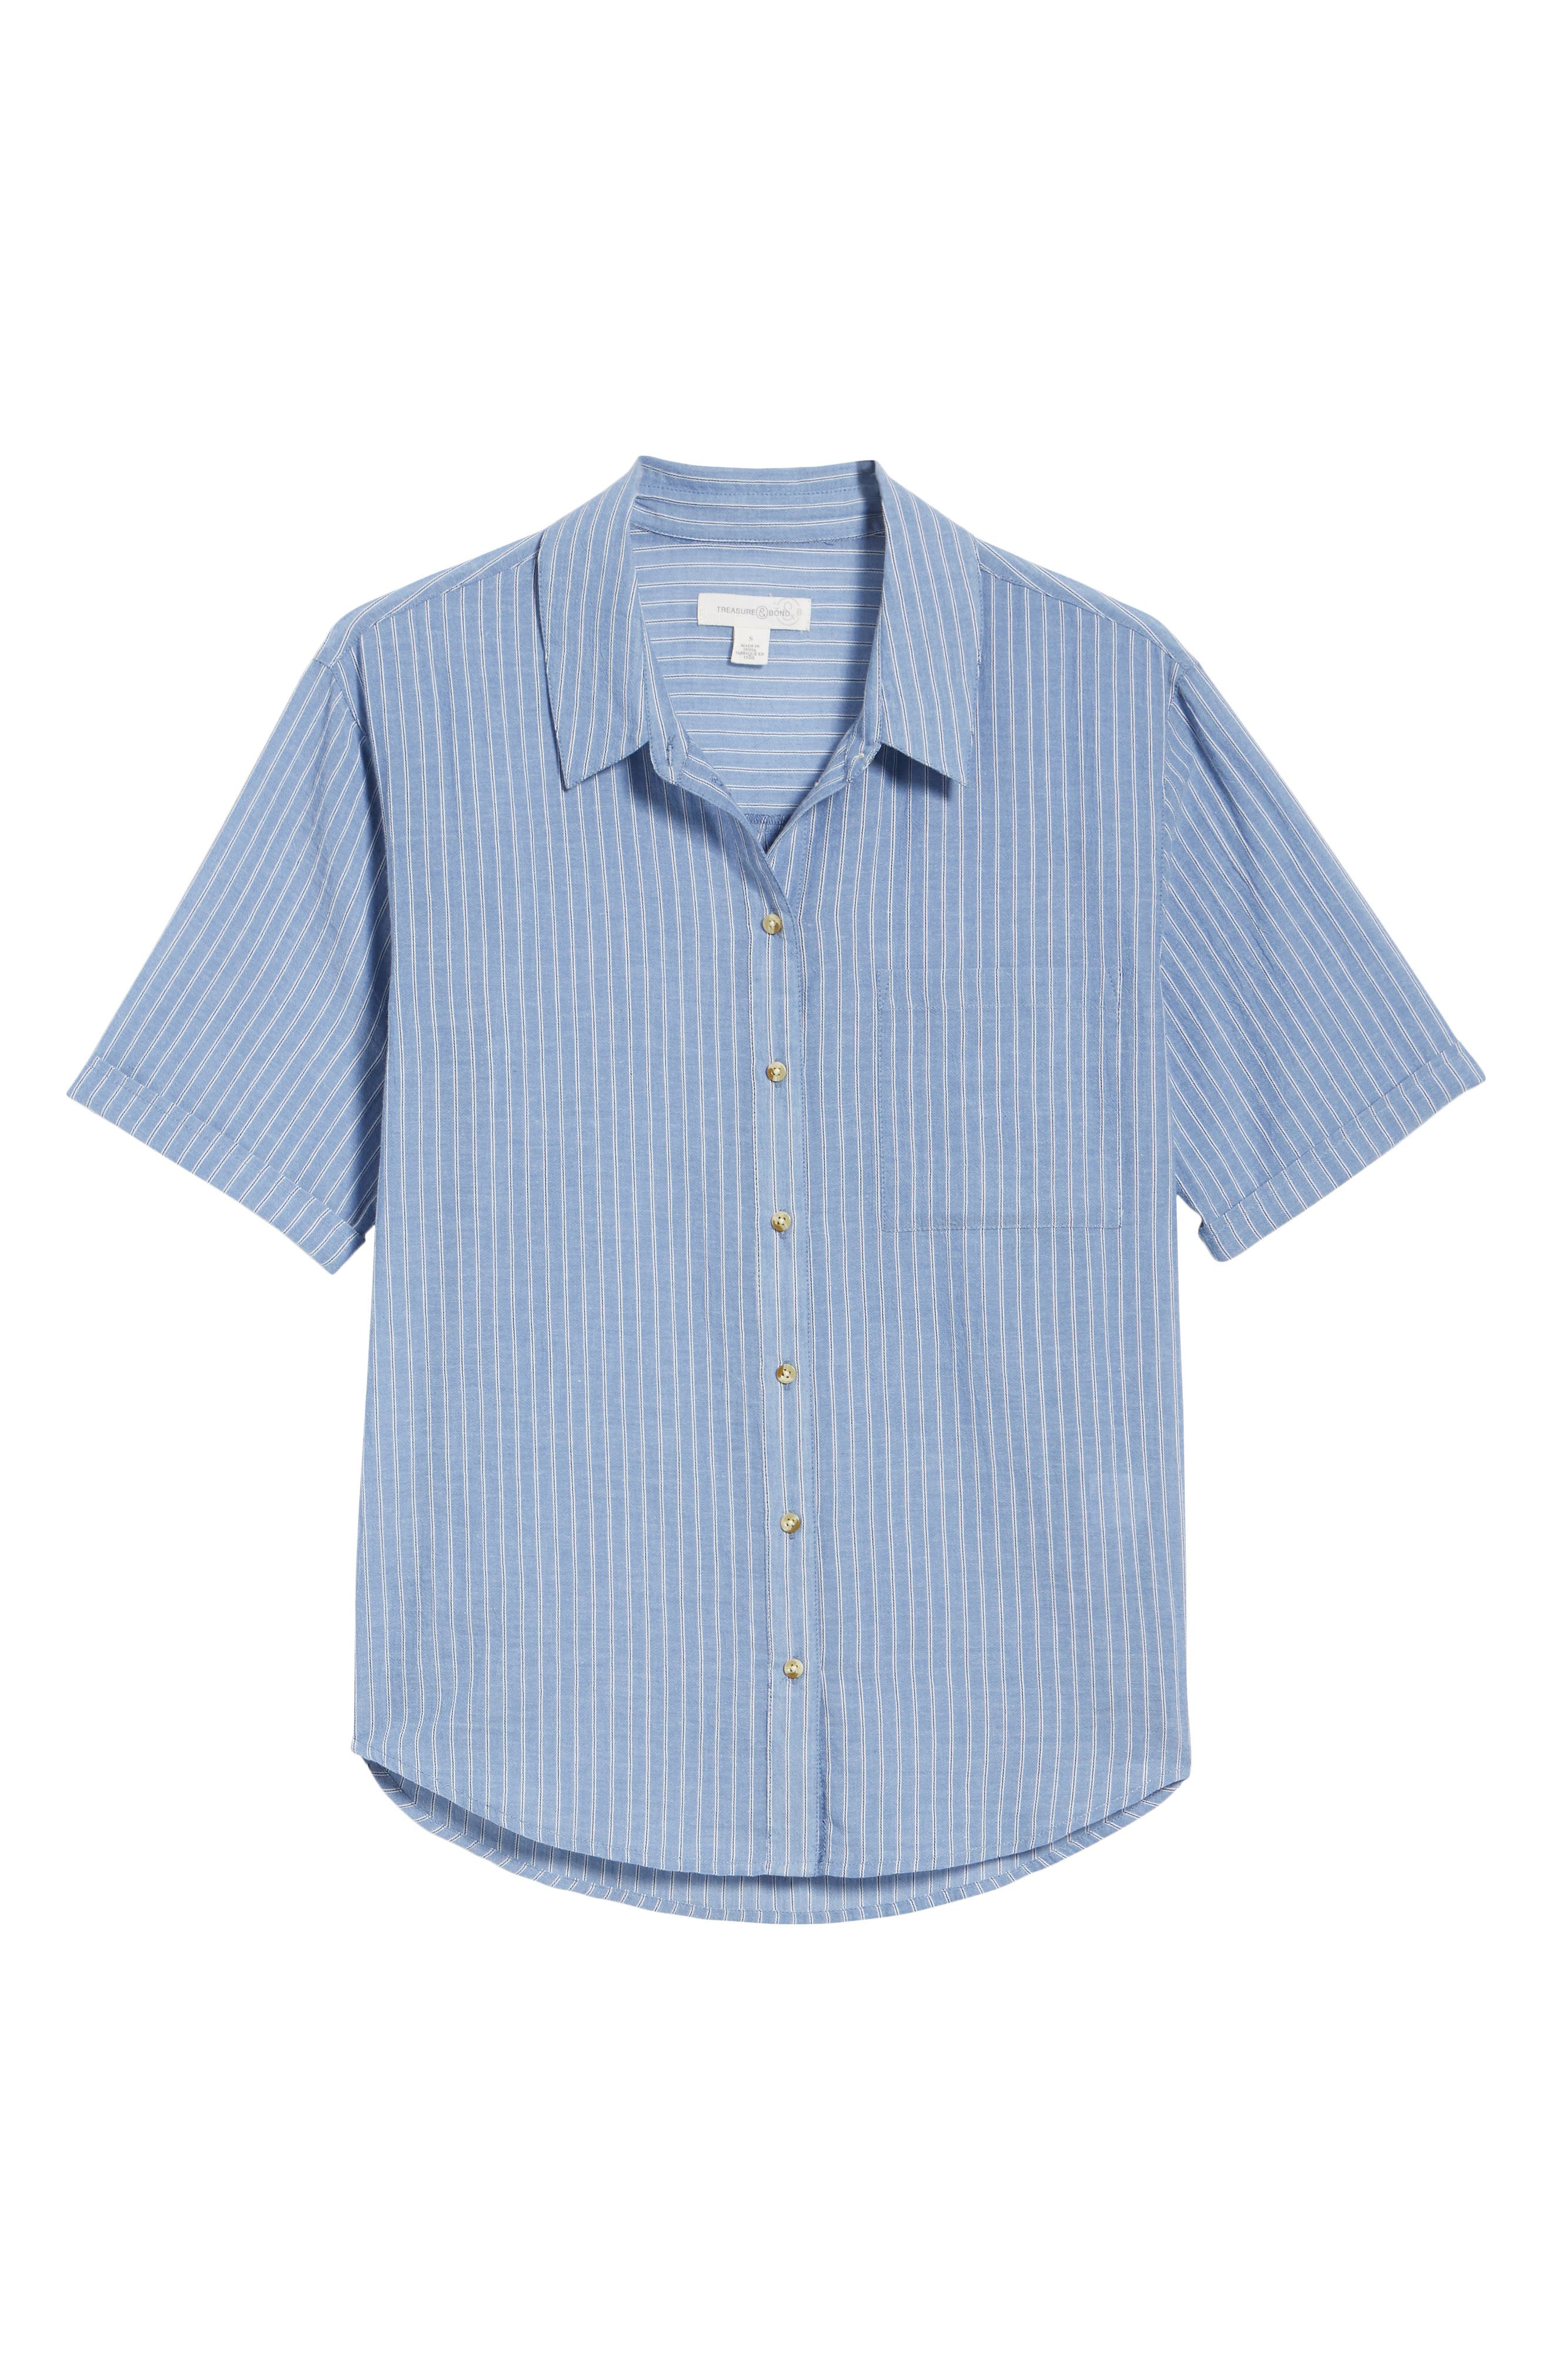 Stripe Button Front Shirt,                             Alternate thumbnail 6, color,                             Blue Airy Stripe